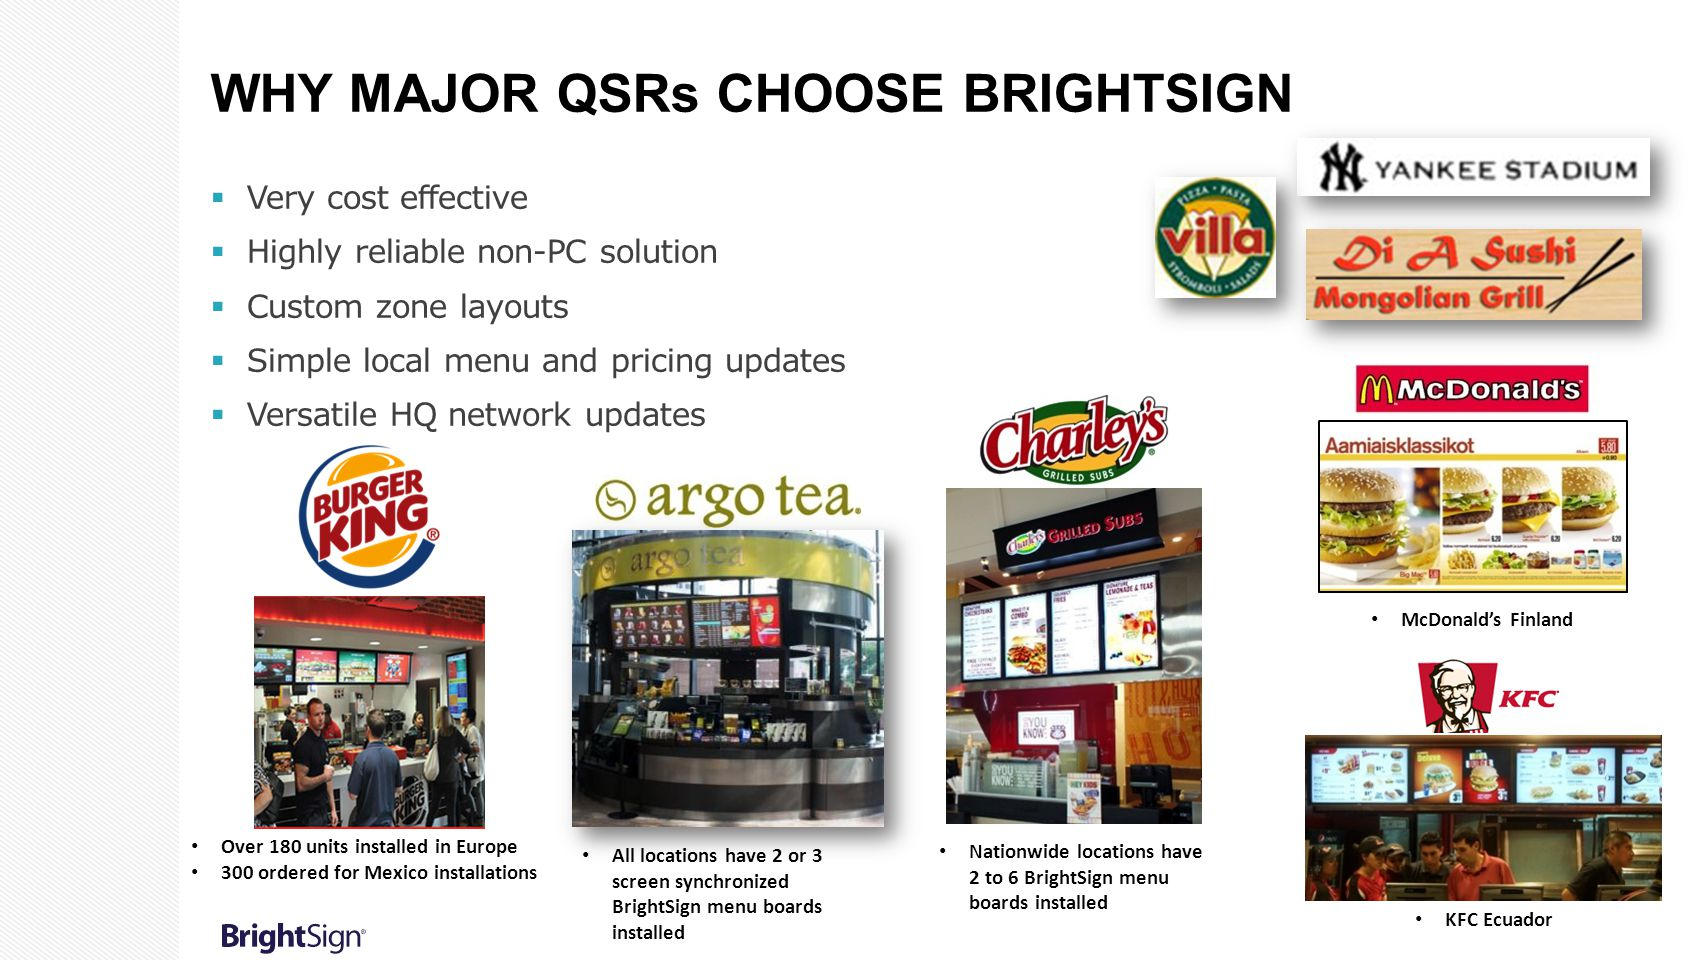 Why Major QSRs Choose BrightSign